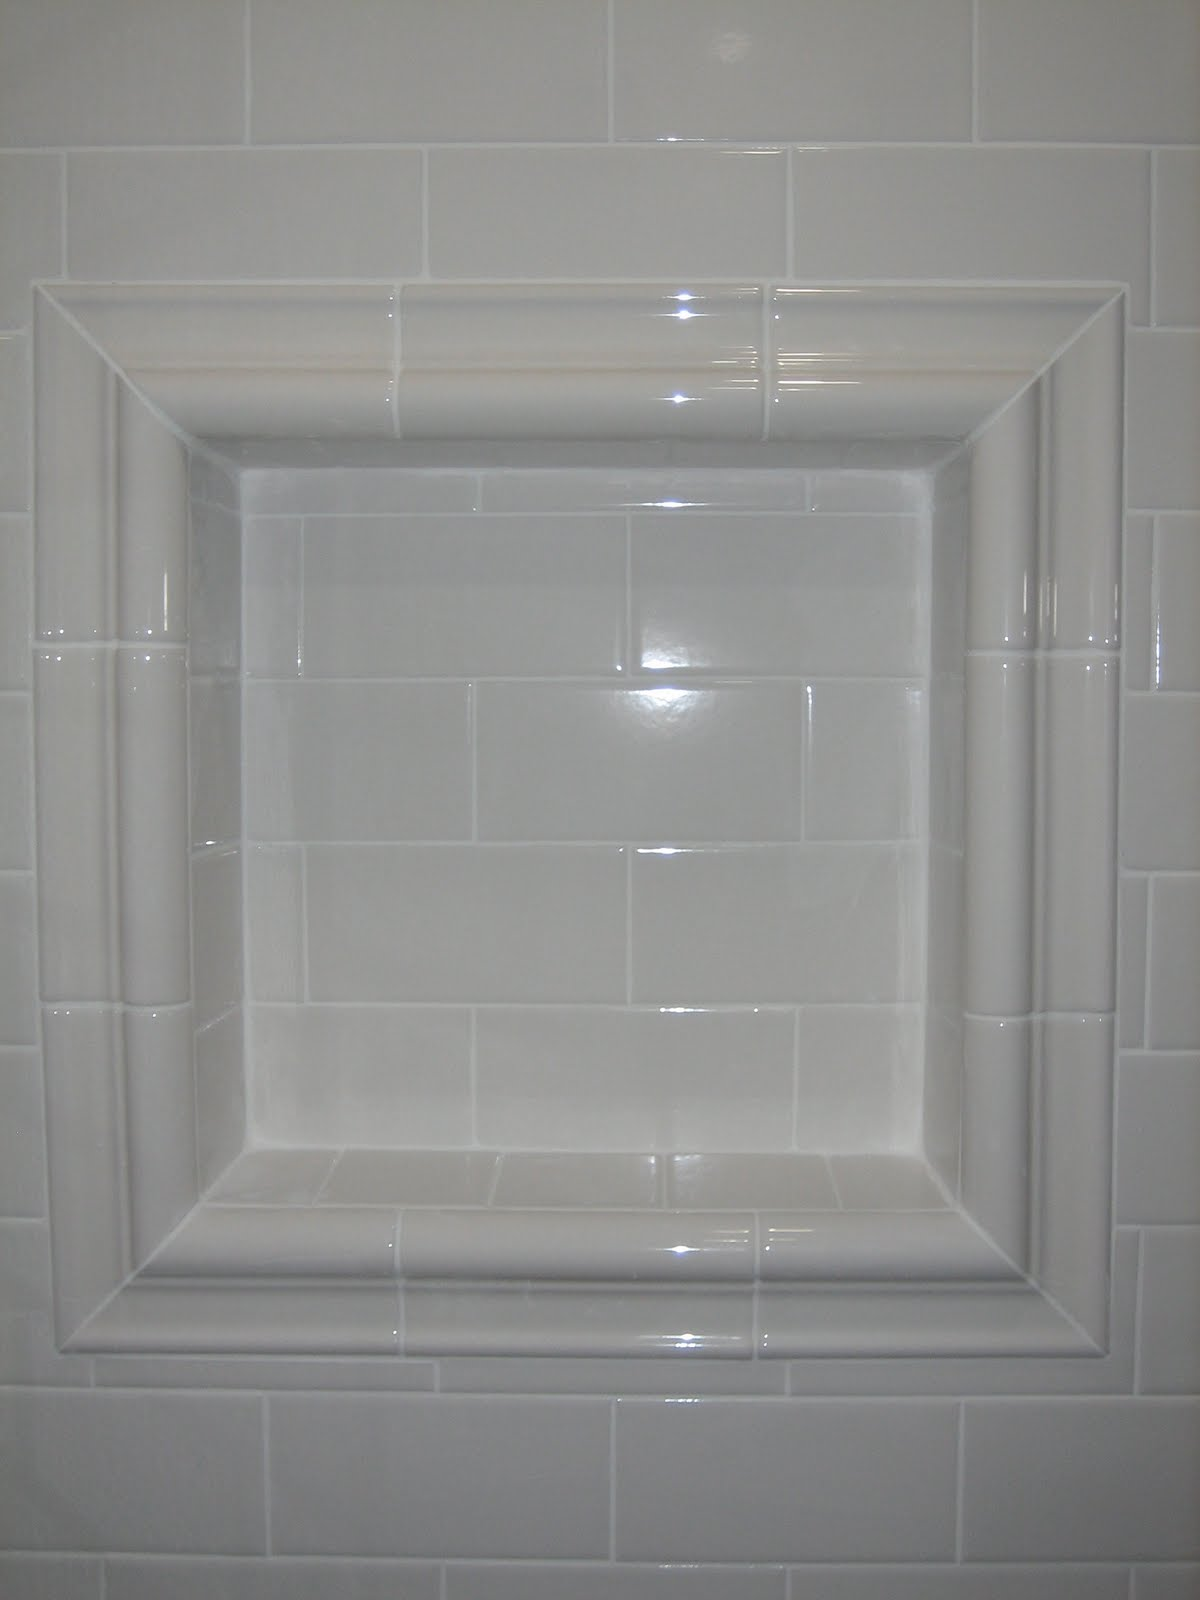 how to cut flange off tile edge